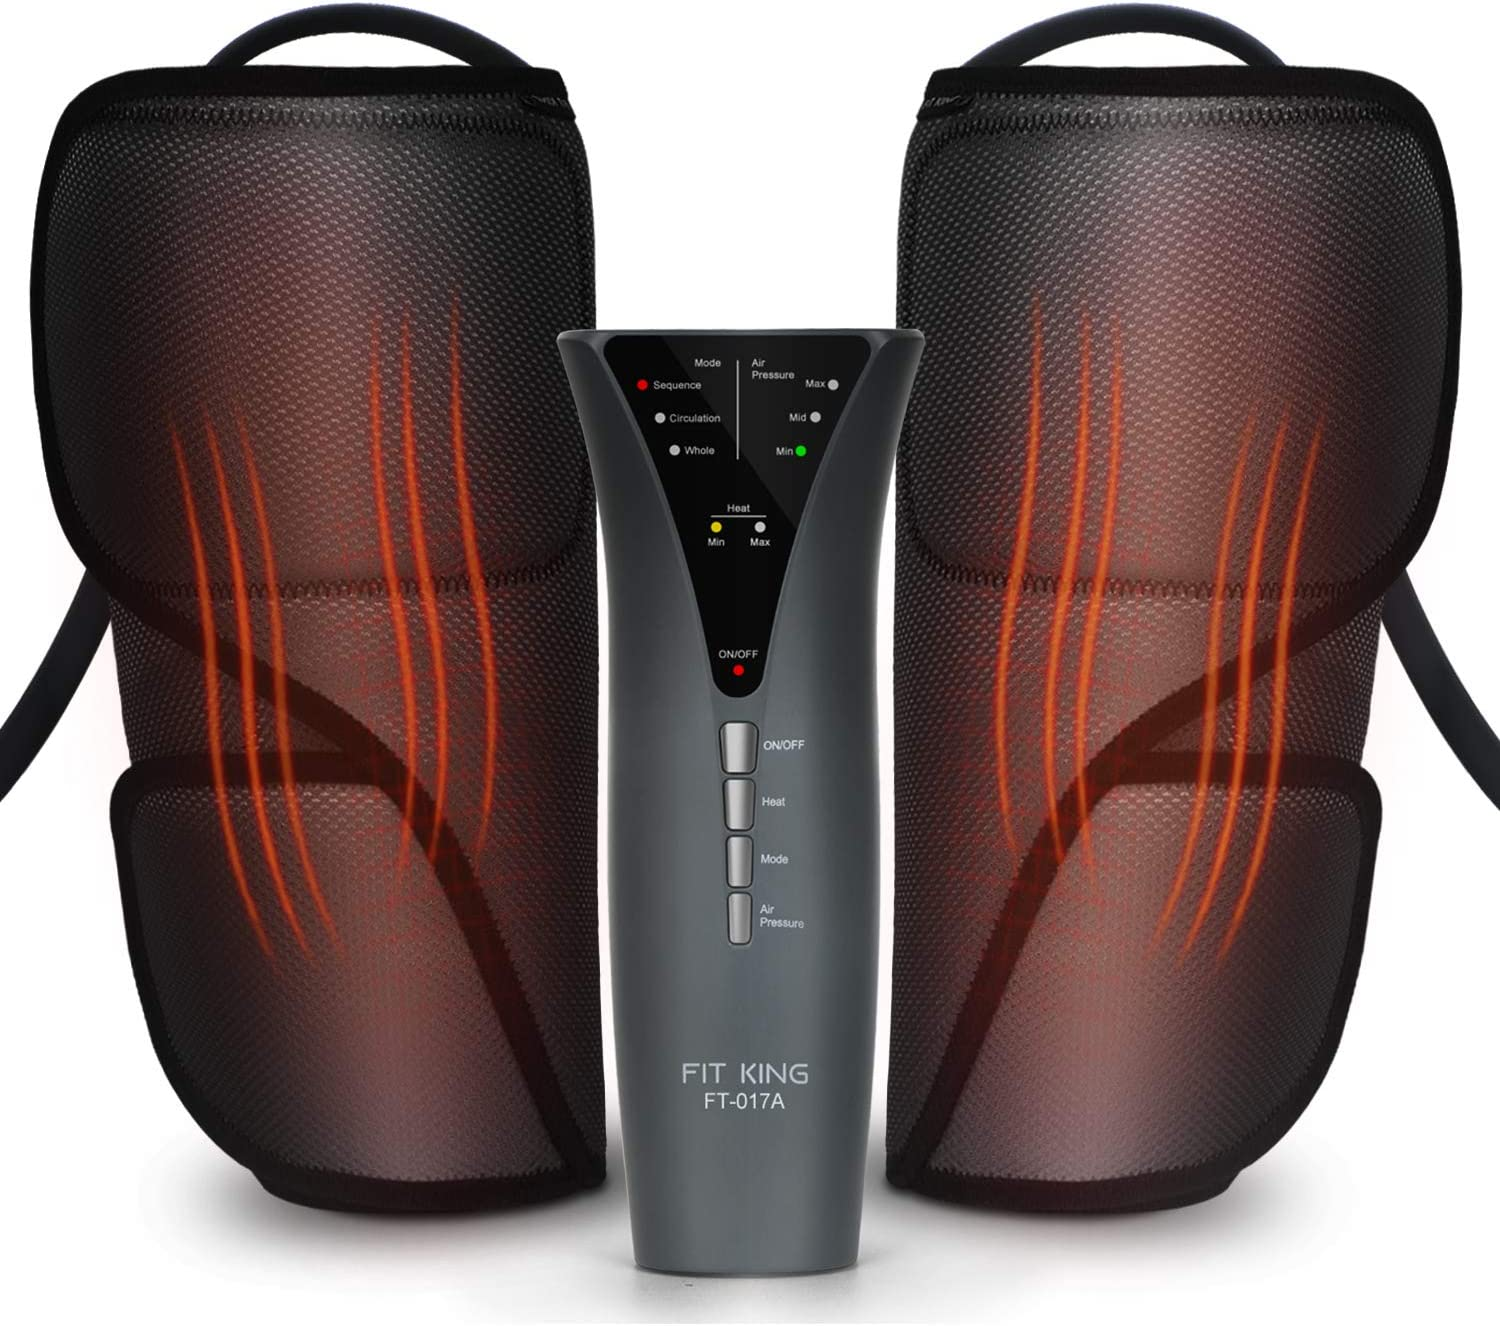 FIT KING Leg Massager with Heat for Circulation Air Compression Calf  Massager with Hand-held Controller FT-017A: Amazon.co.uk: Health & Personal  Care